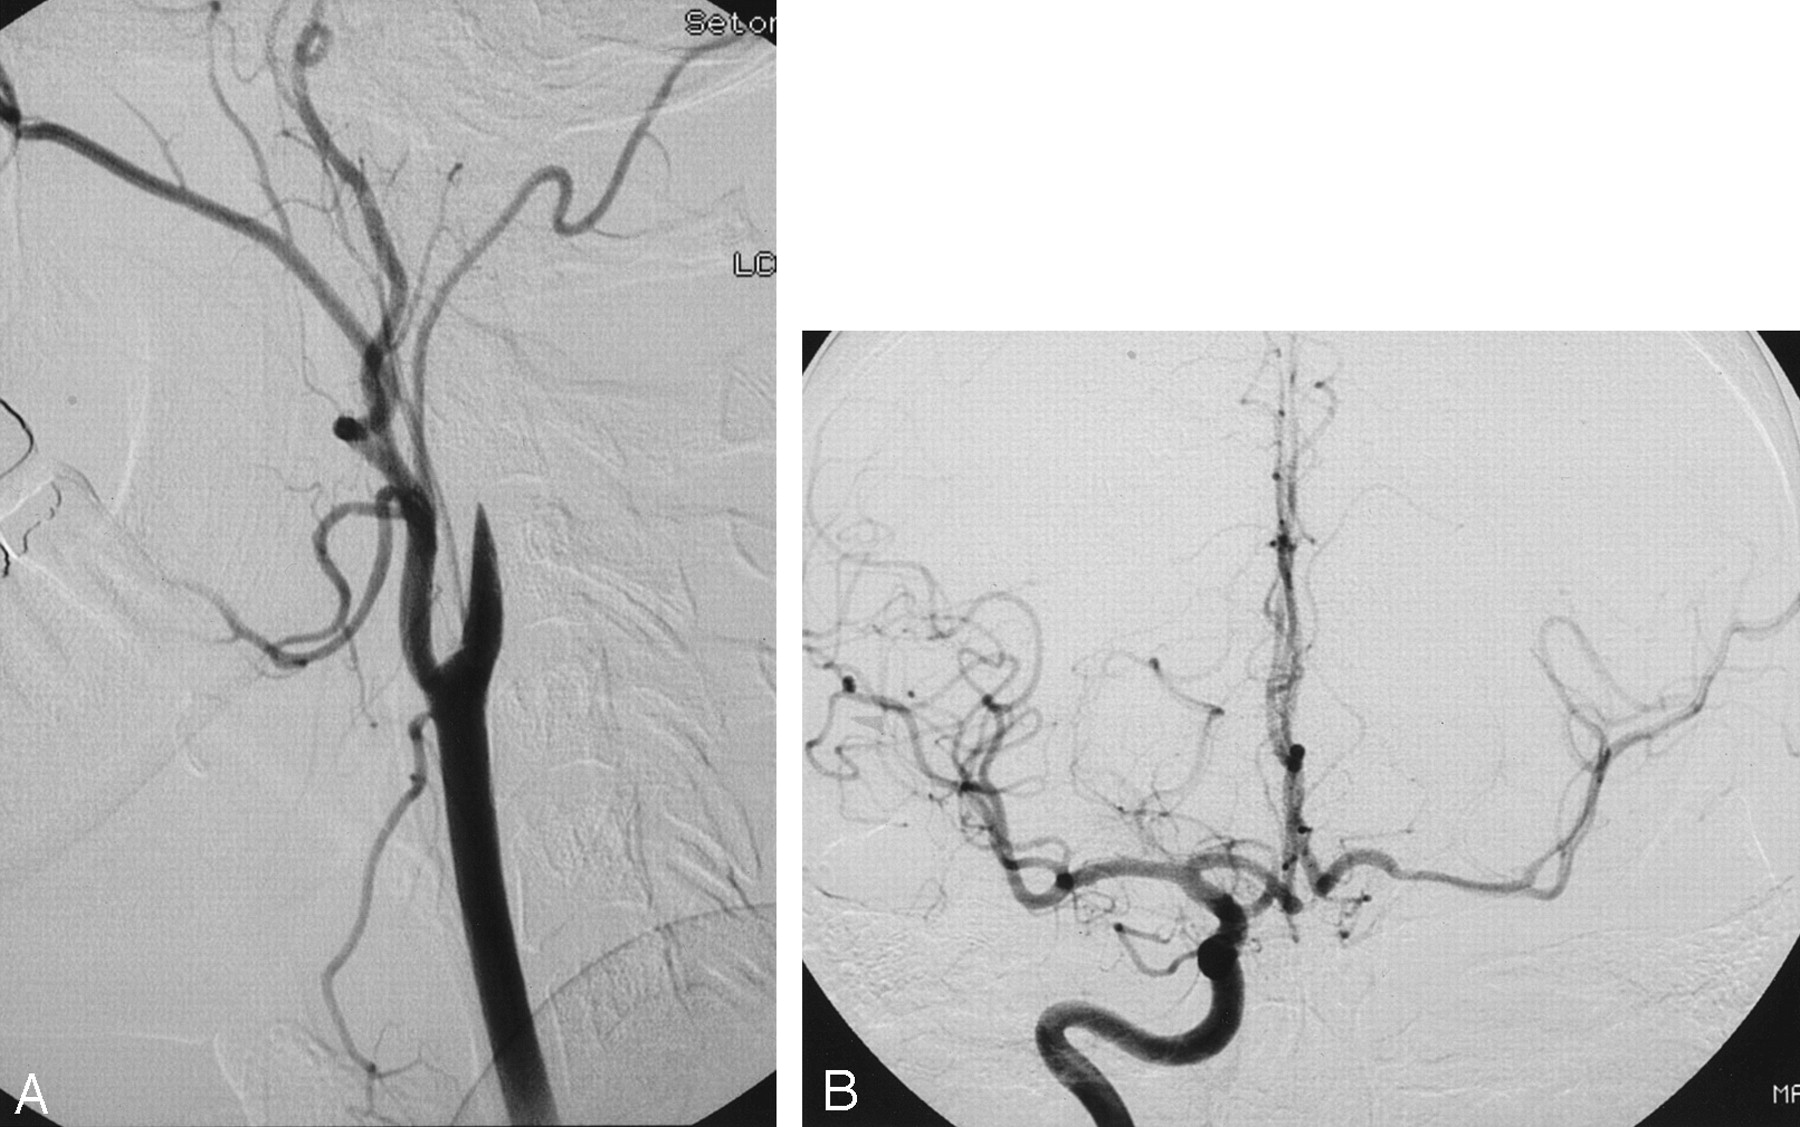 Stent Coil Treatment Of A Distal Internal Carotid Artery